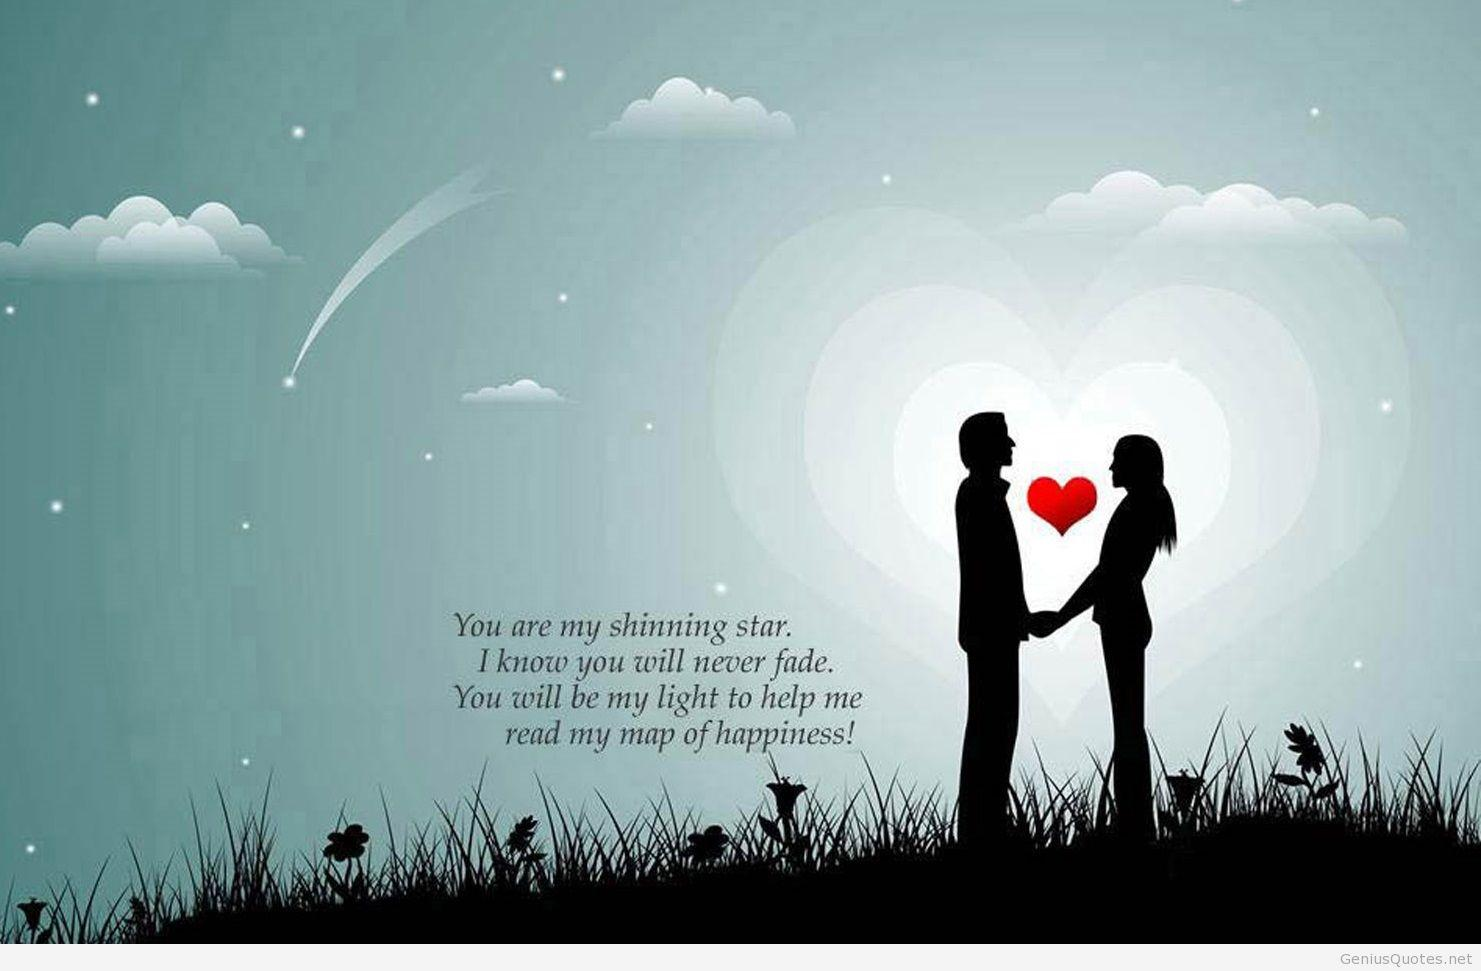 Love Wallpapers New 2015 : Latest Love Wallpapers 2015 - Wallpaper cave